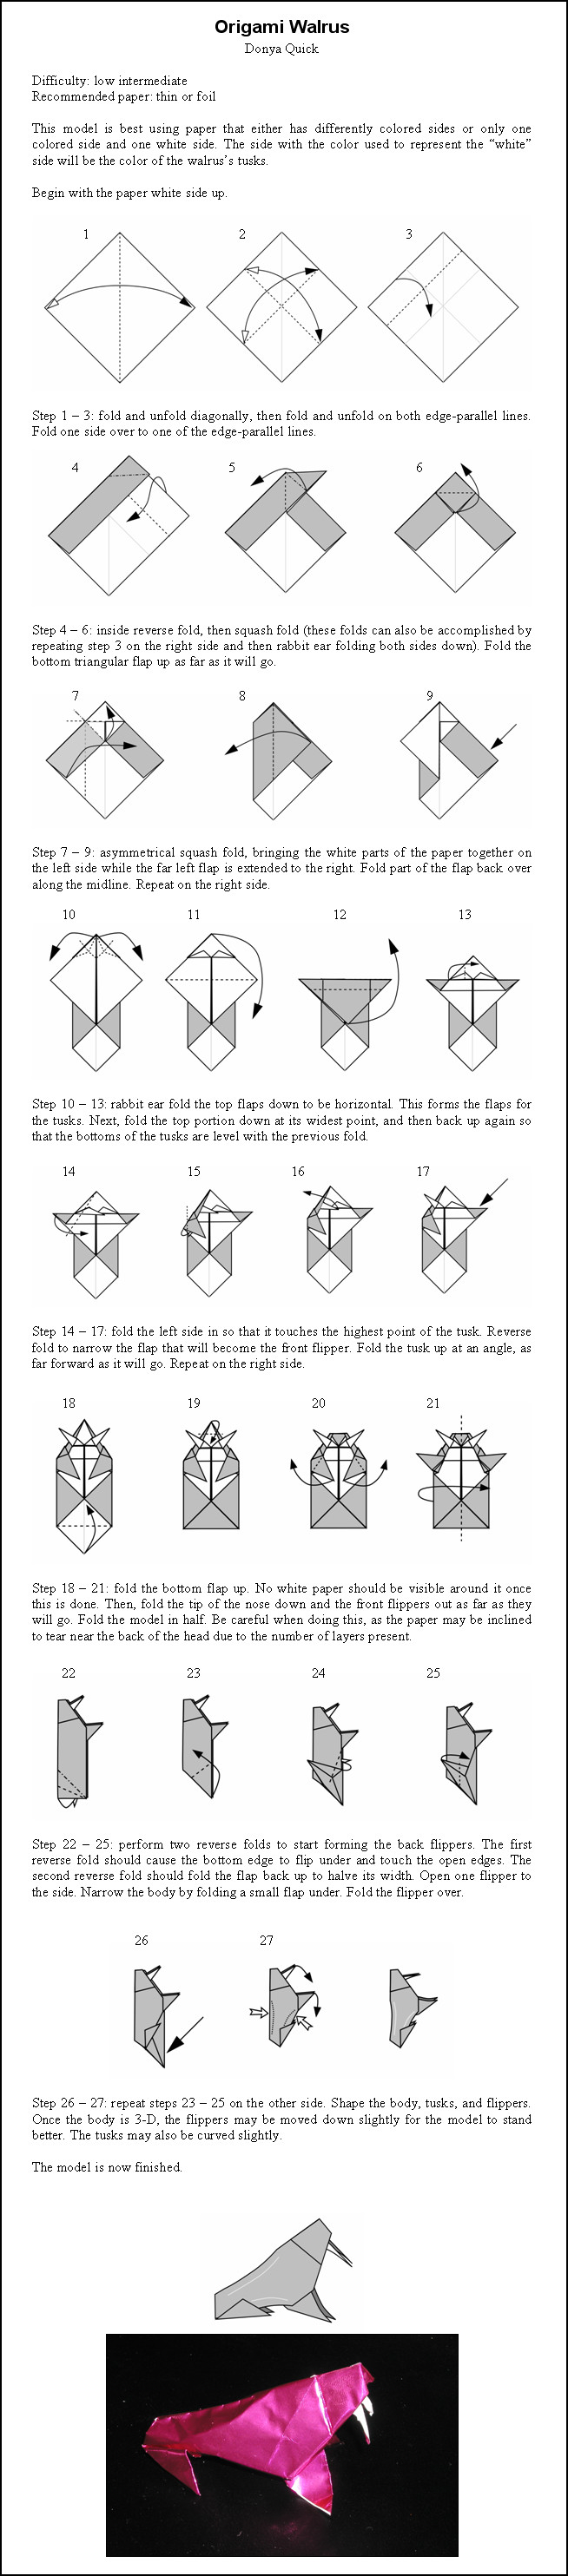 origami triceratops instructions